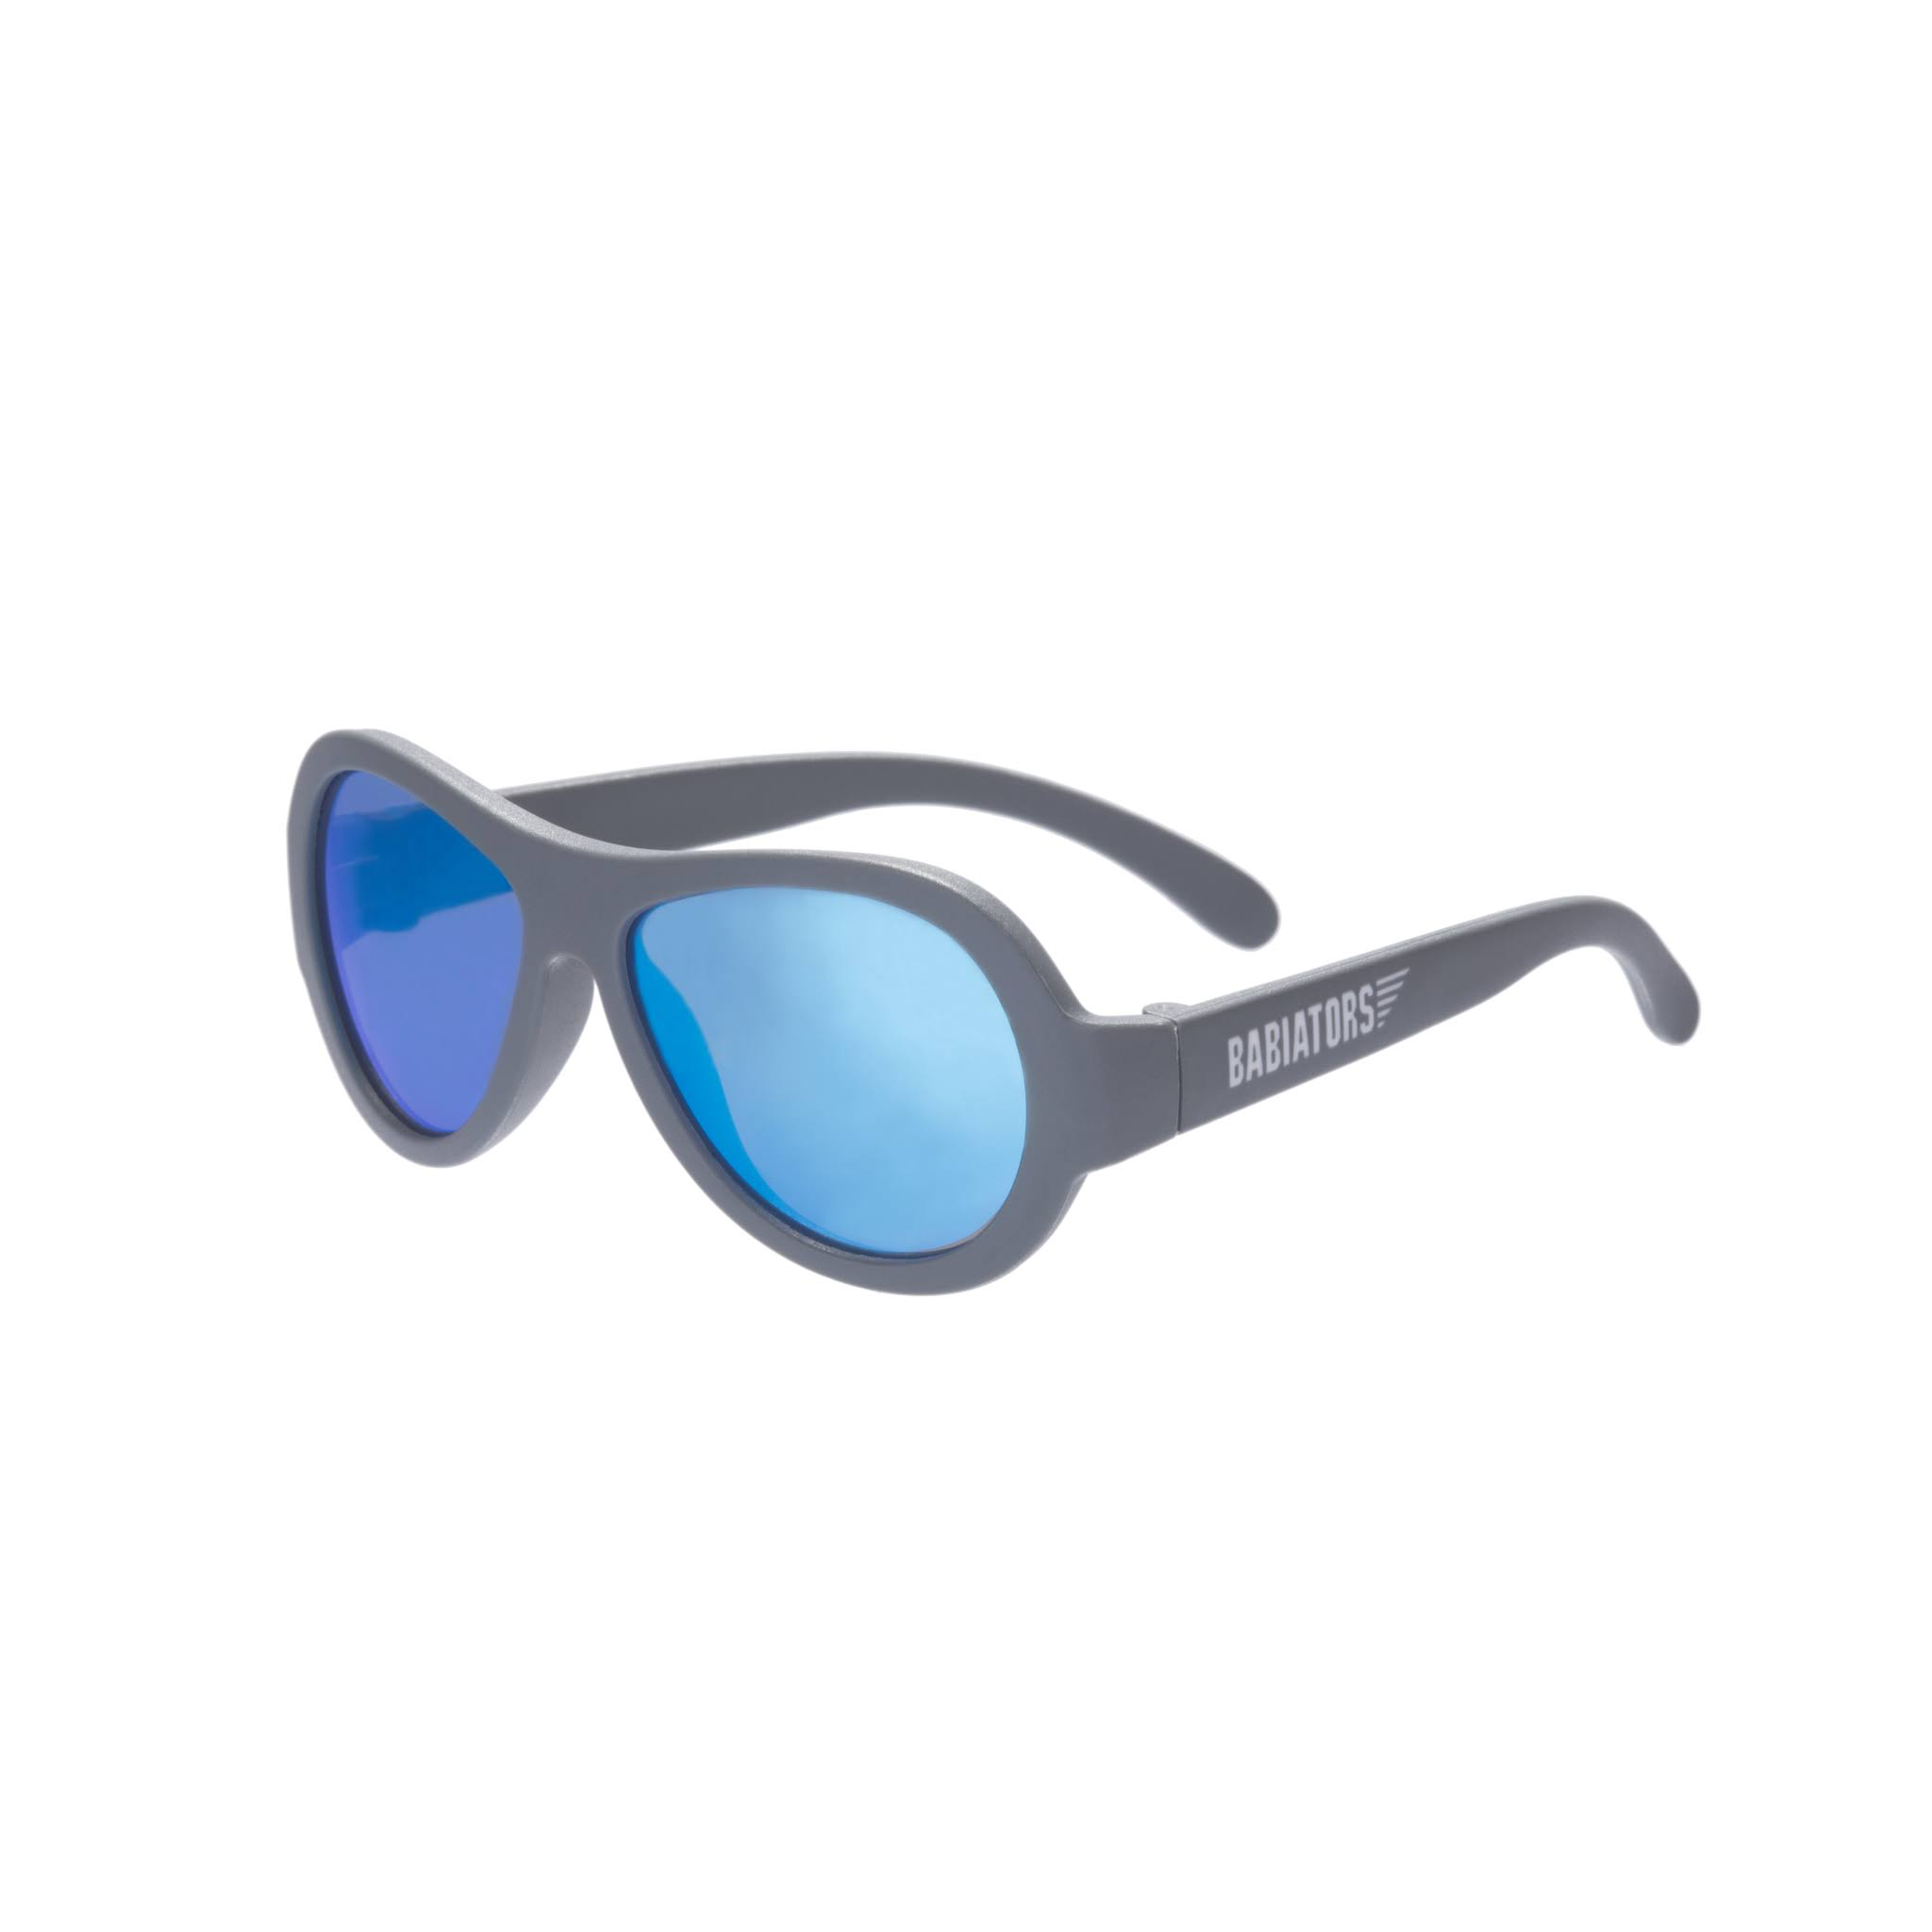 Babiators Original Aviator Sunglasses: Blue Steel Junior